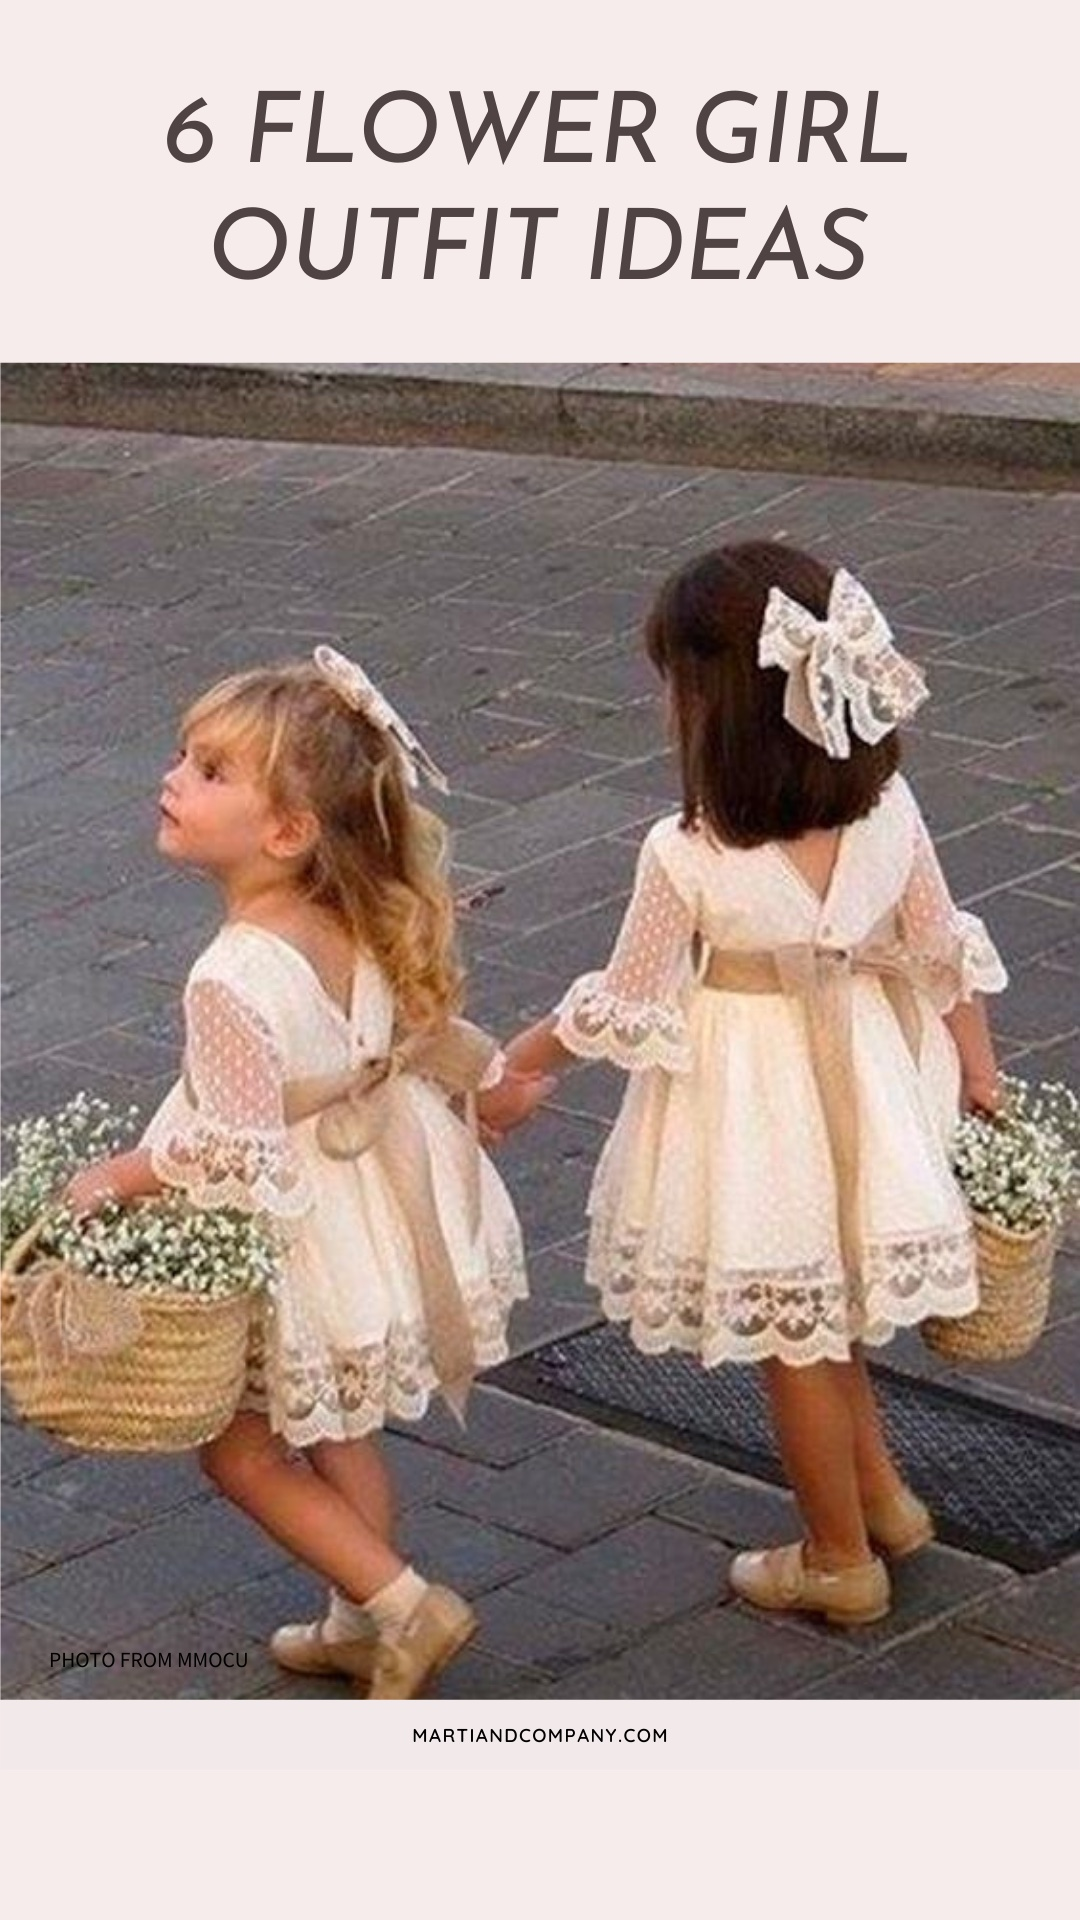 2 flower girl outfit ideas